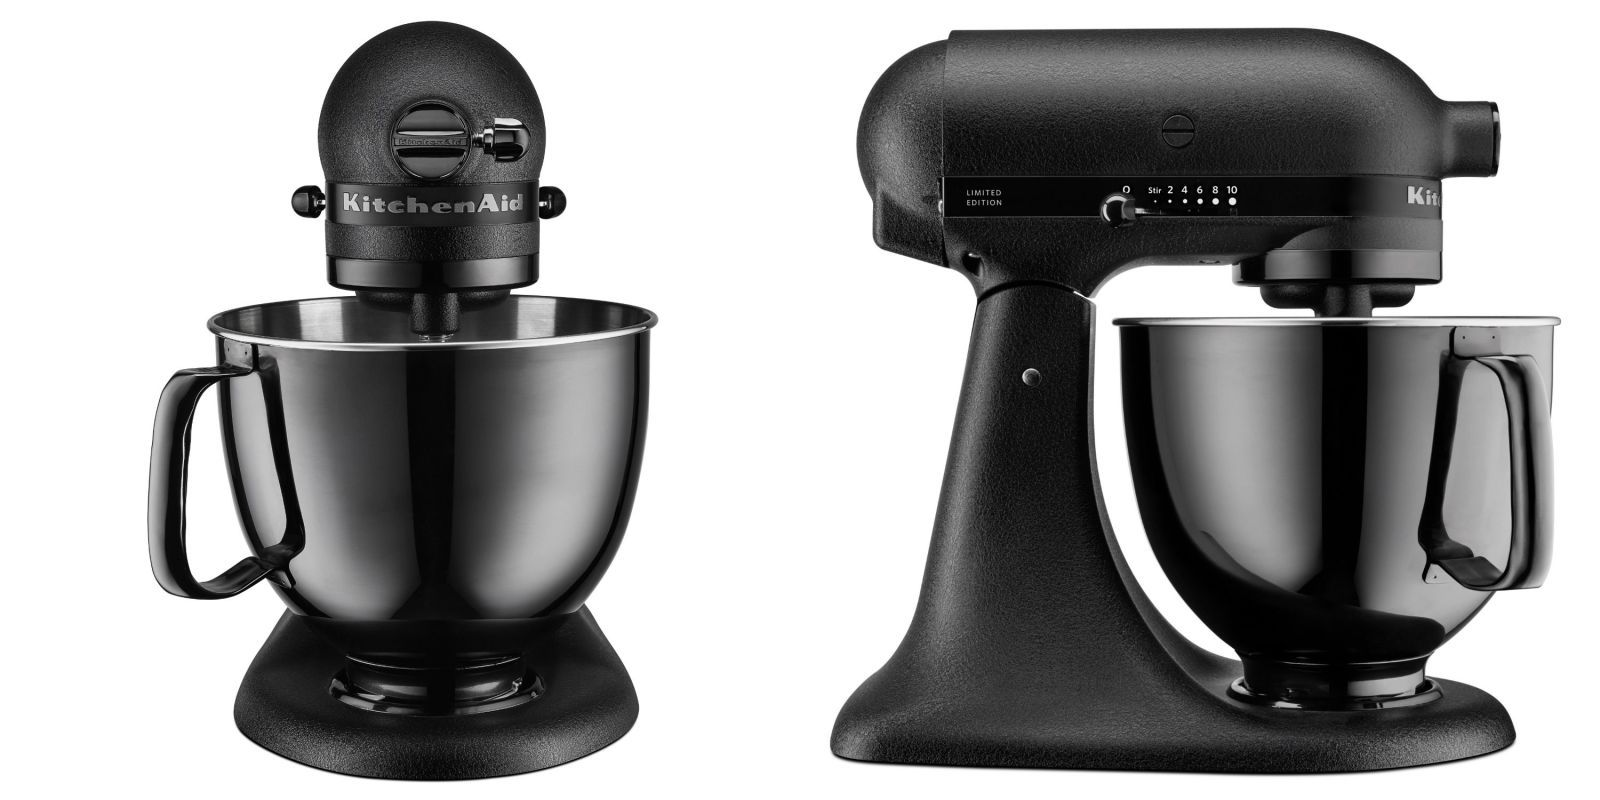 Exceptionnel All Black KitchenAid Mixer Is Now Available. The Product Is Limited  Edition, Stainless Steel And Features A Black Cast Iron Finish And Black  Powder Coating.